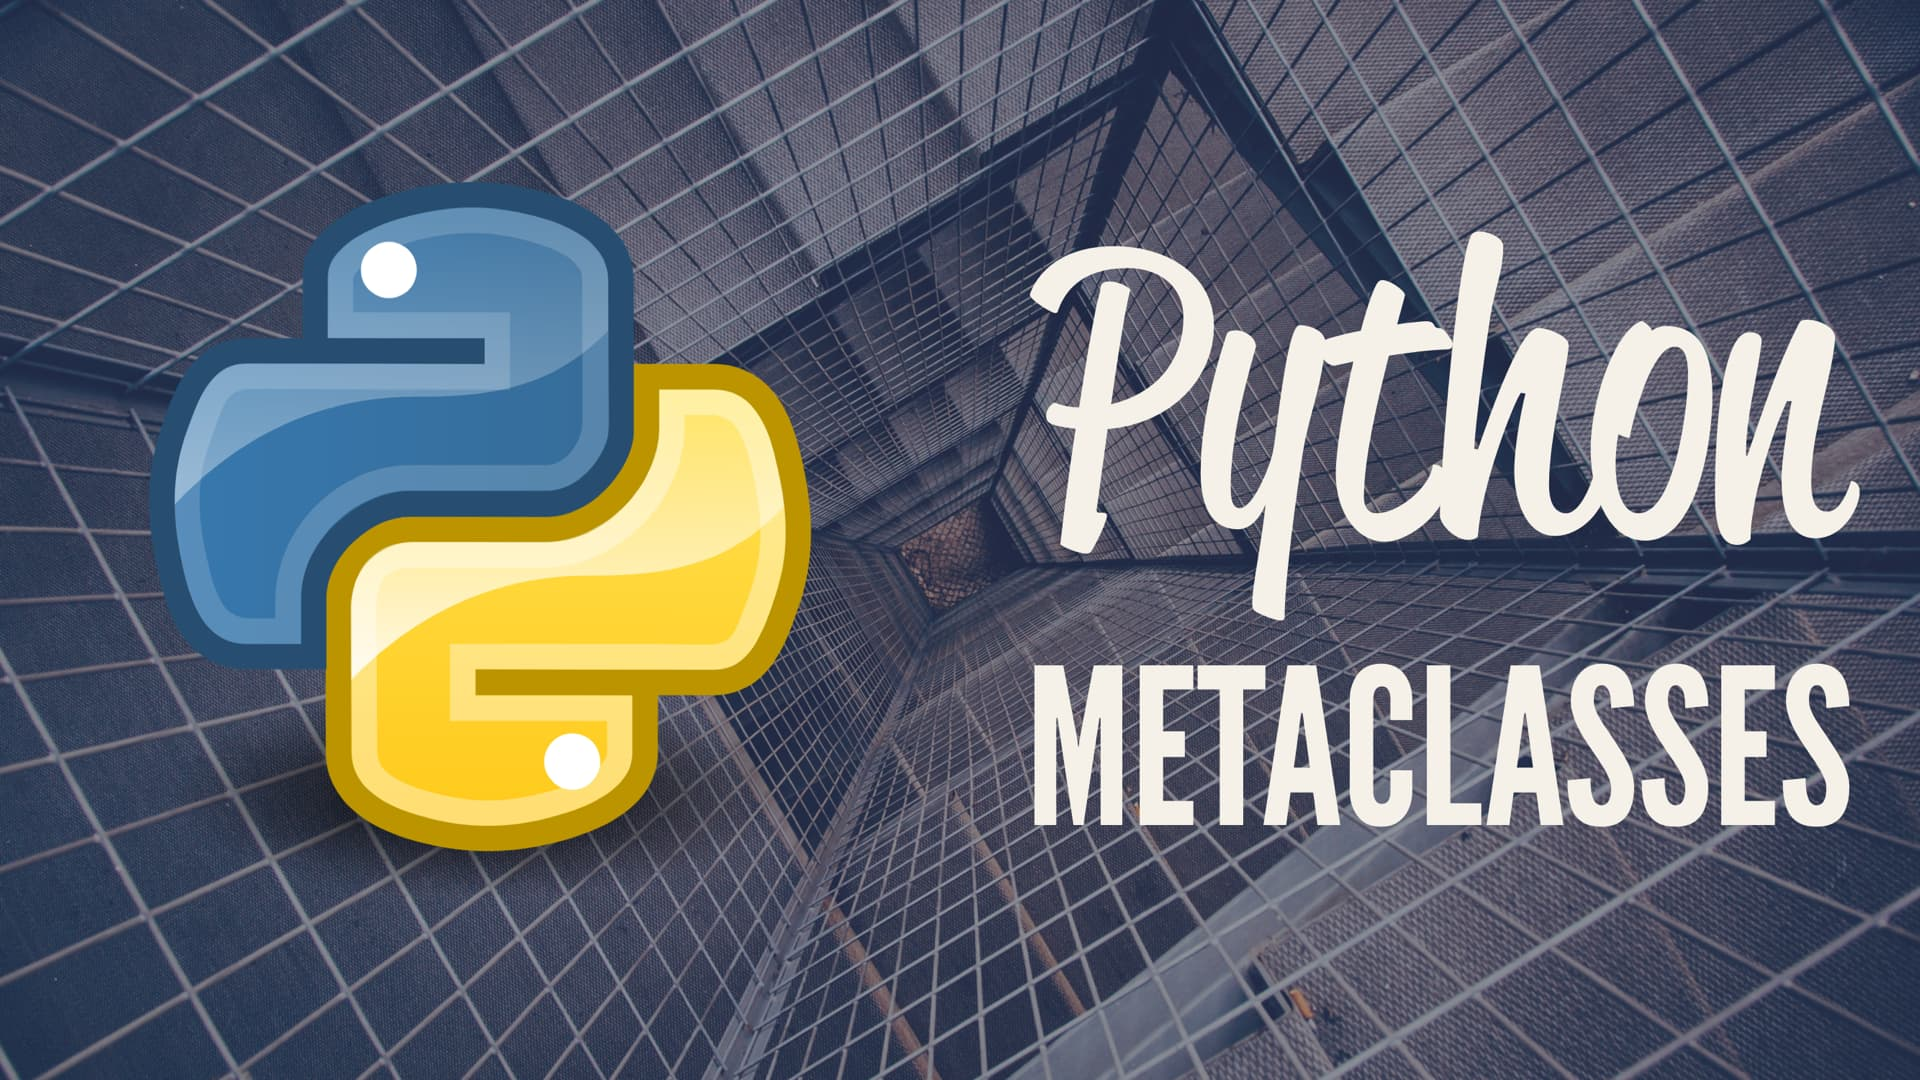 Python Metaclasses and Metaprogramming